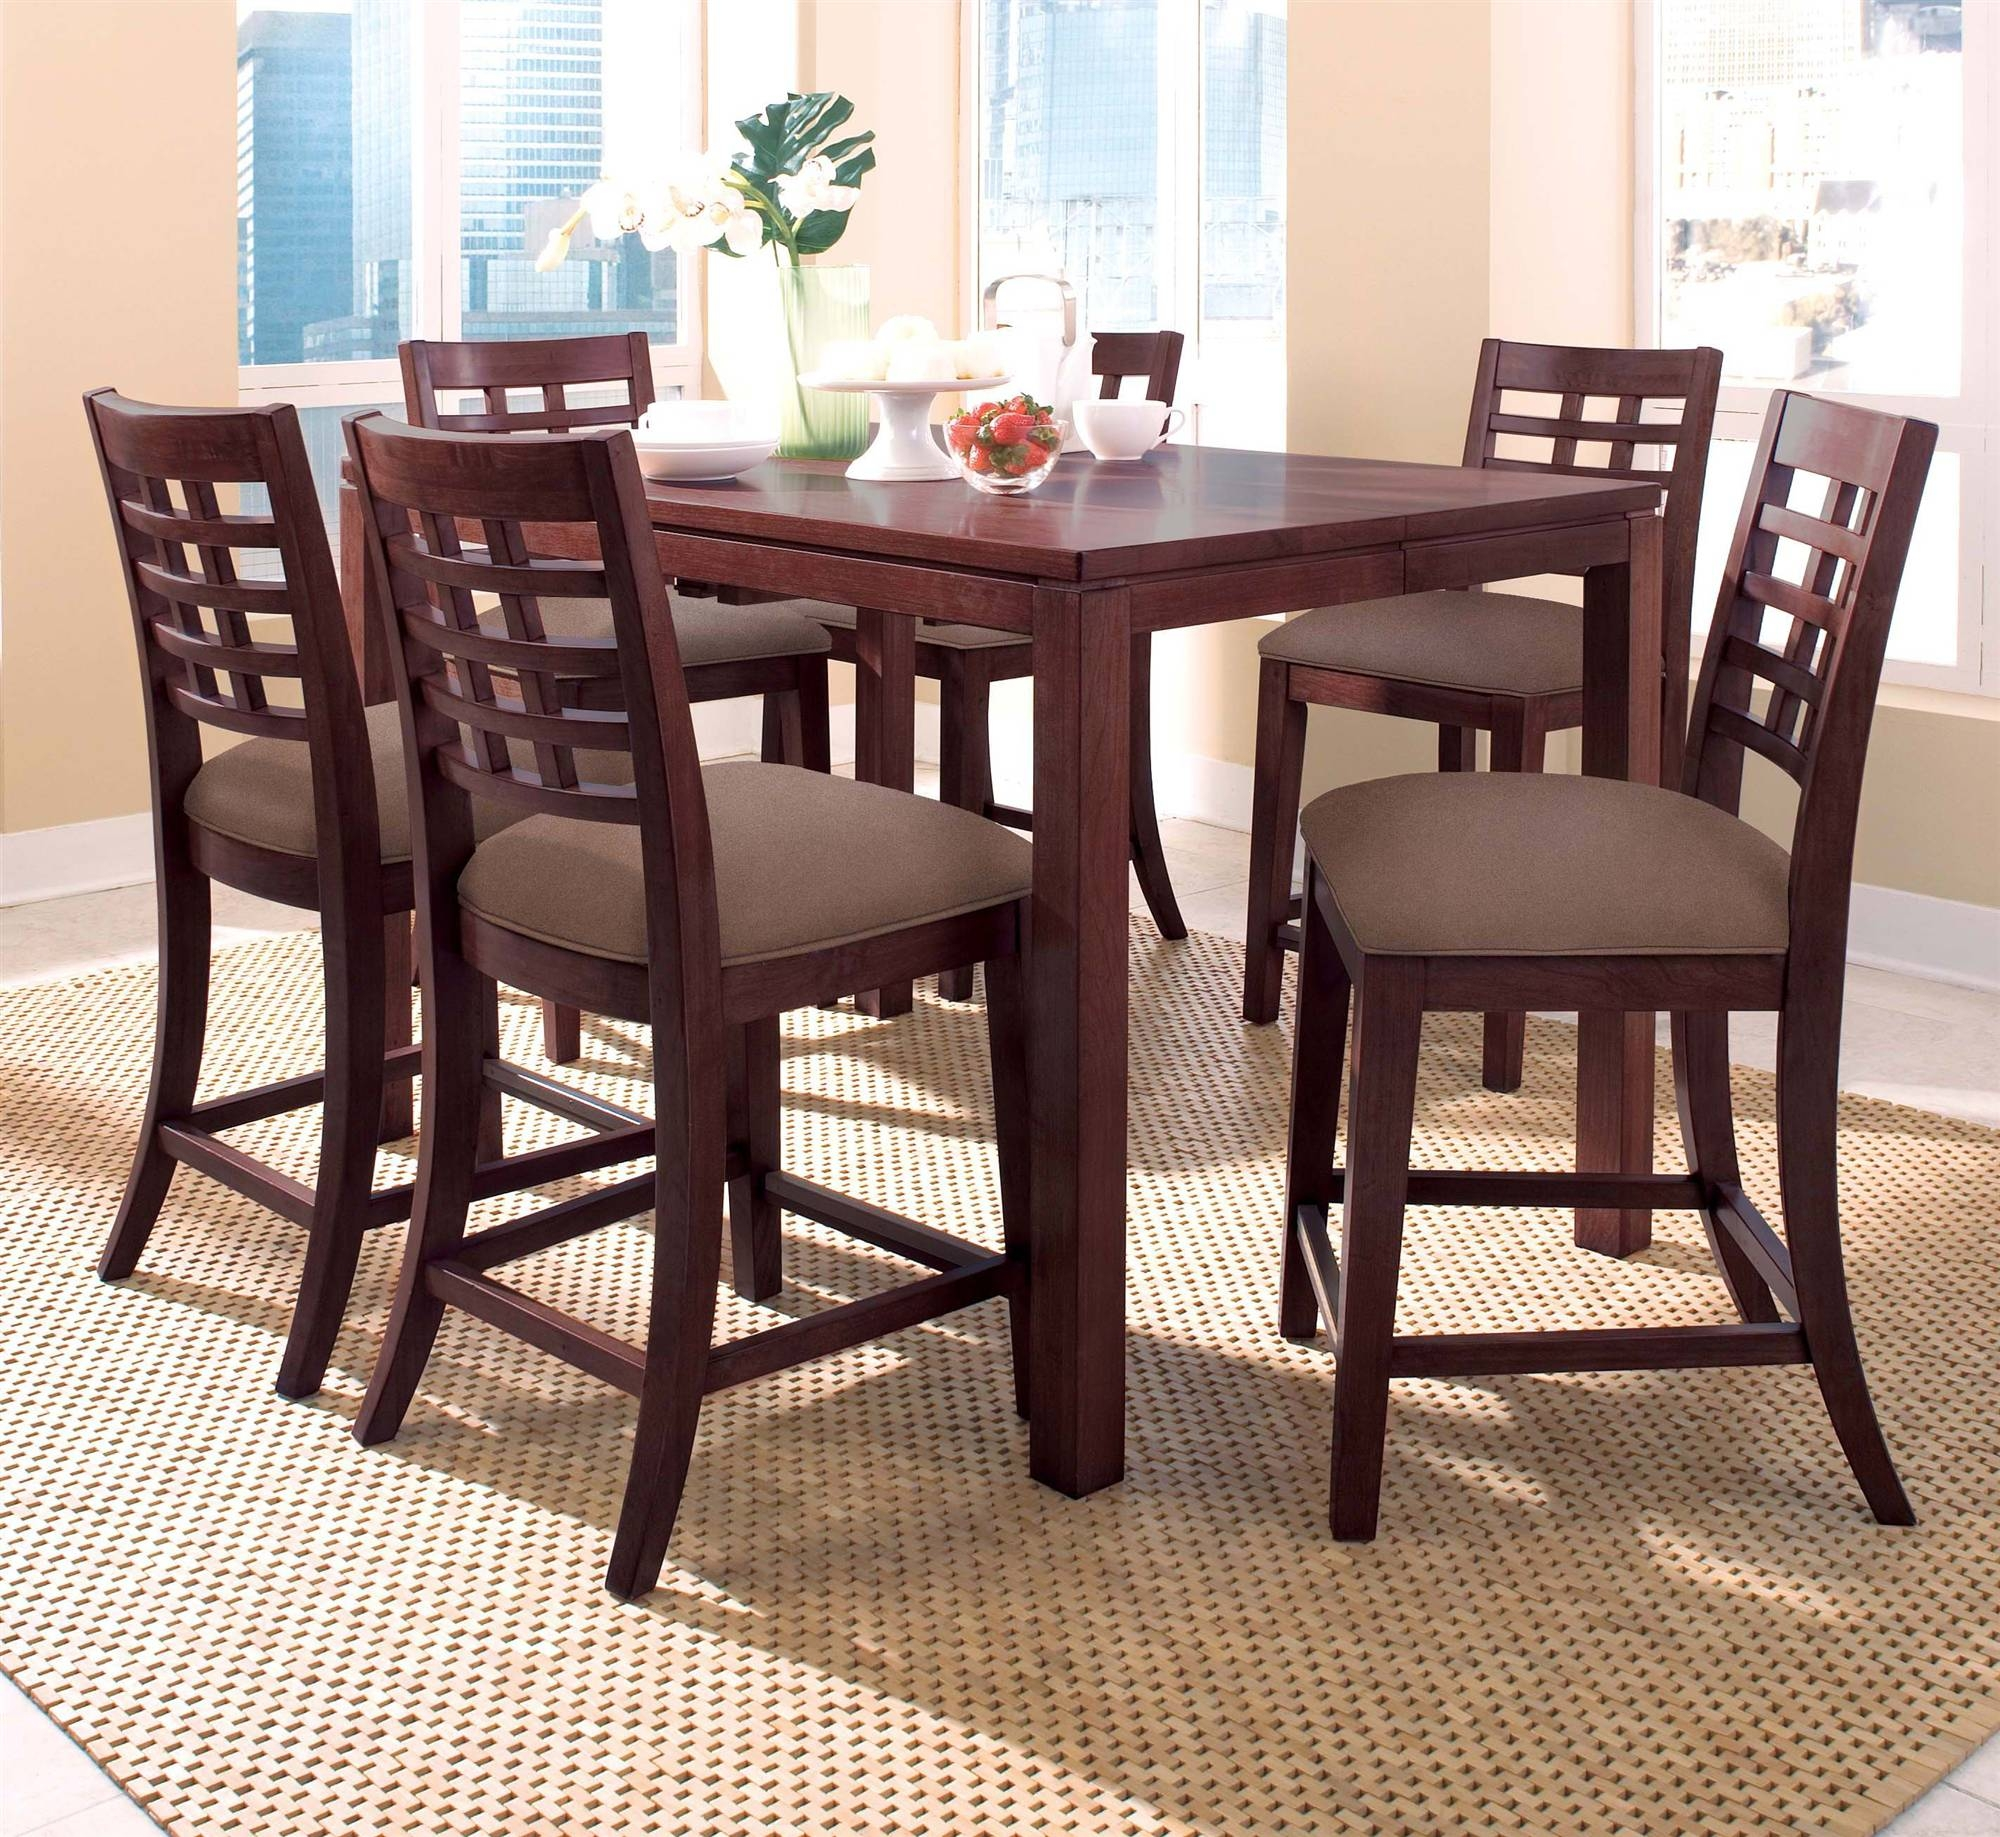 Tall Square Kitchen Table Set